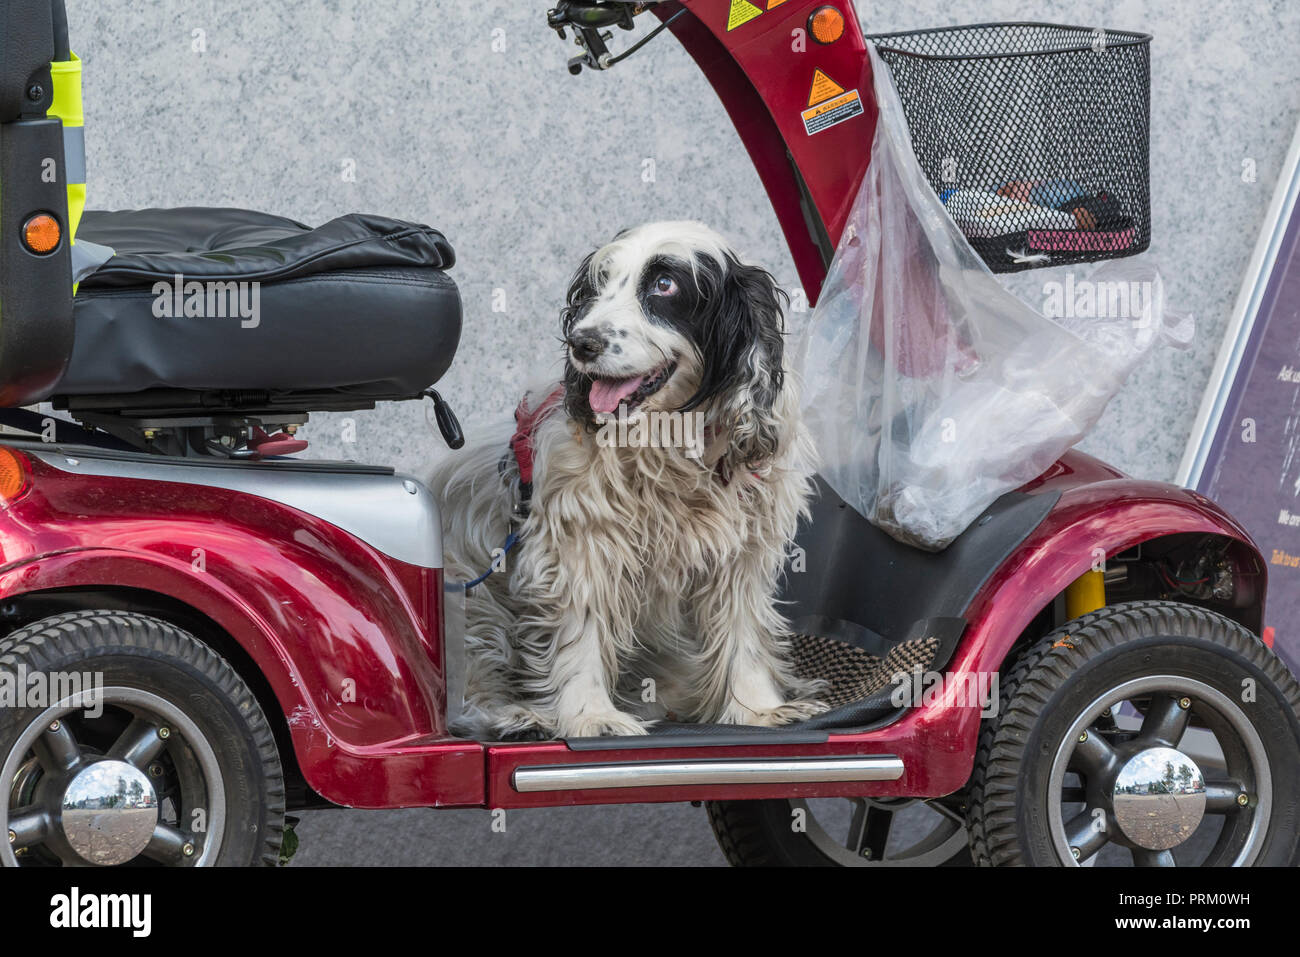 Dog sitting on a mobility scooter waiting for it's owner to return from shops, in the UK. - Stock Image